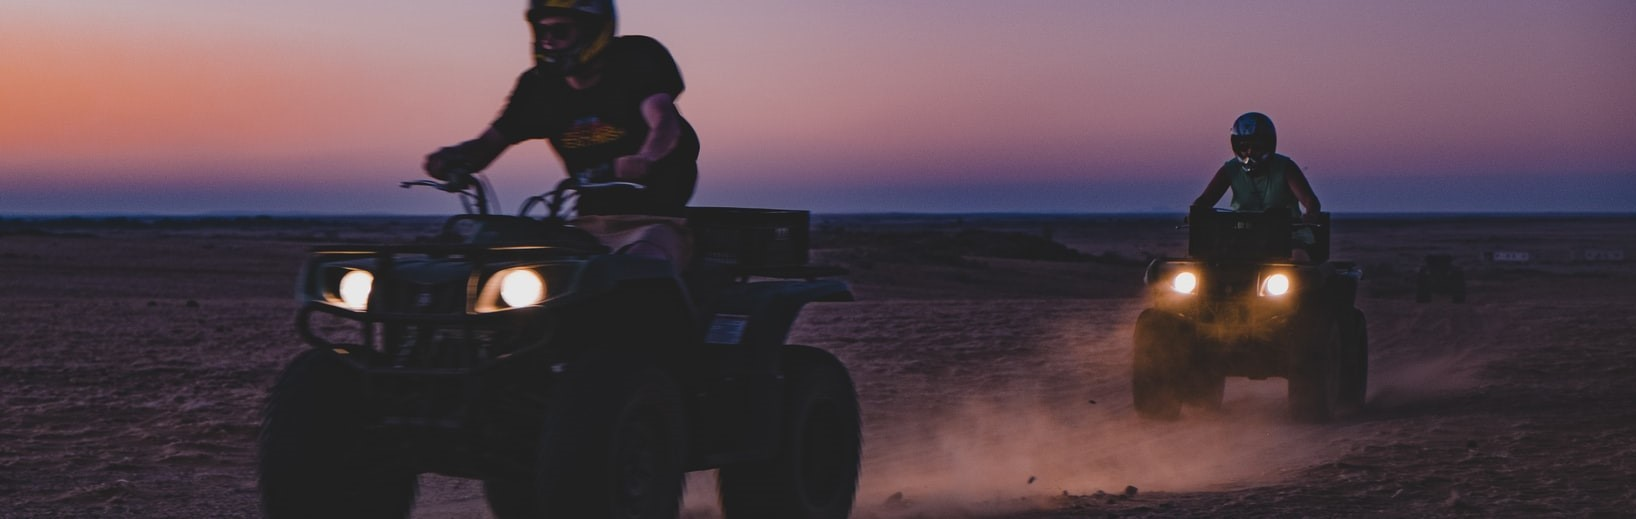 People Riding ATV | Breast Cancer Car Donations